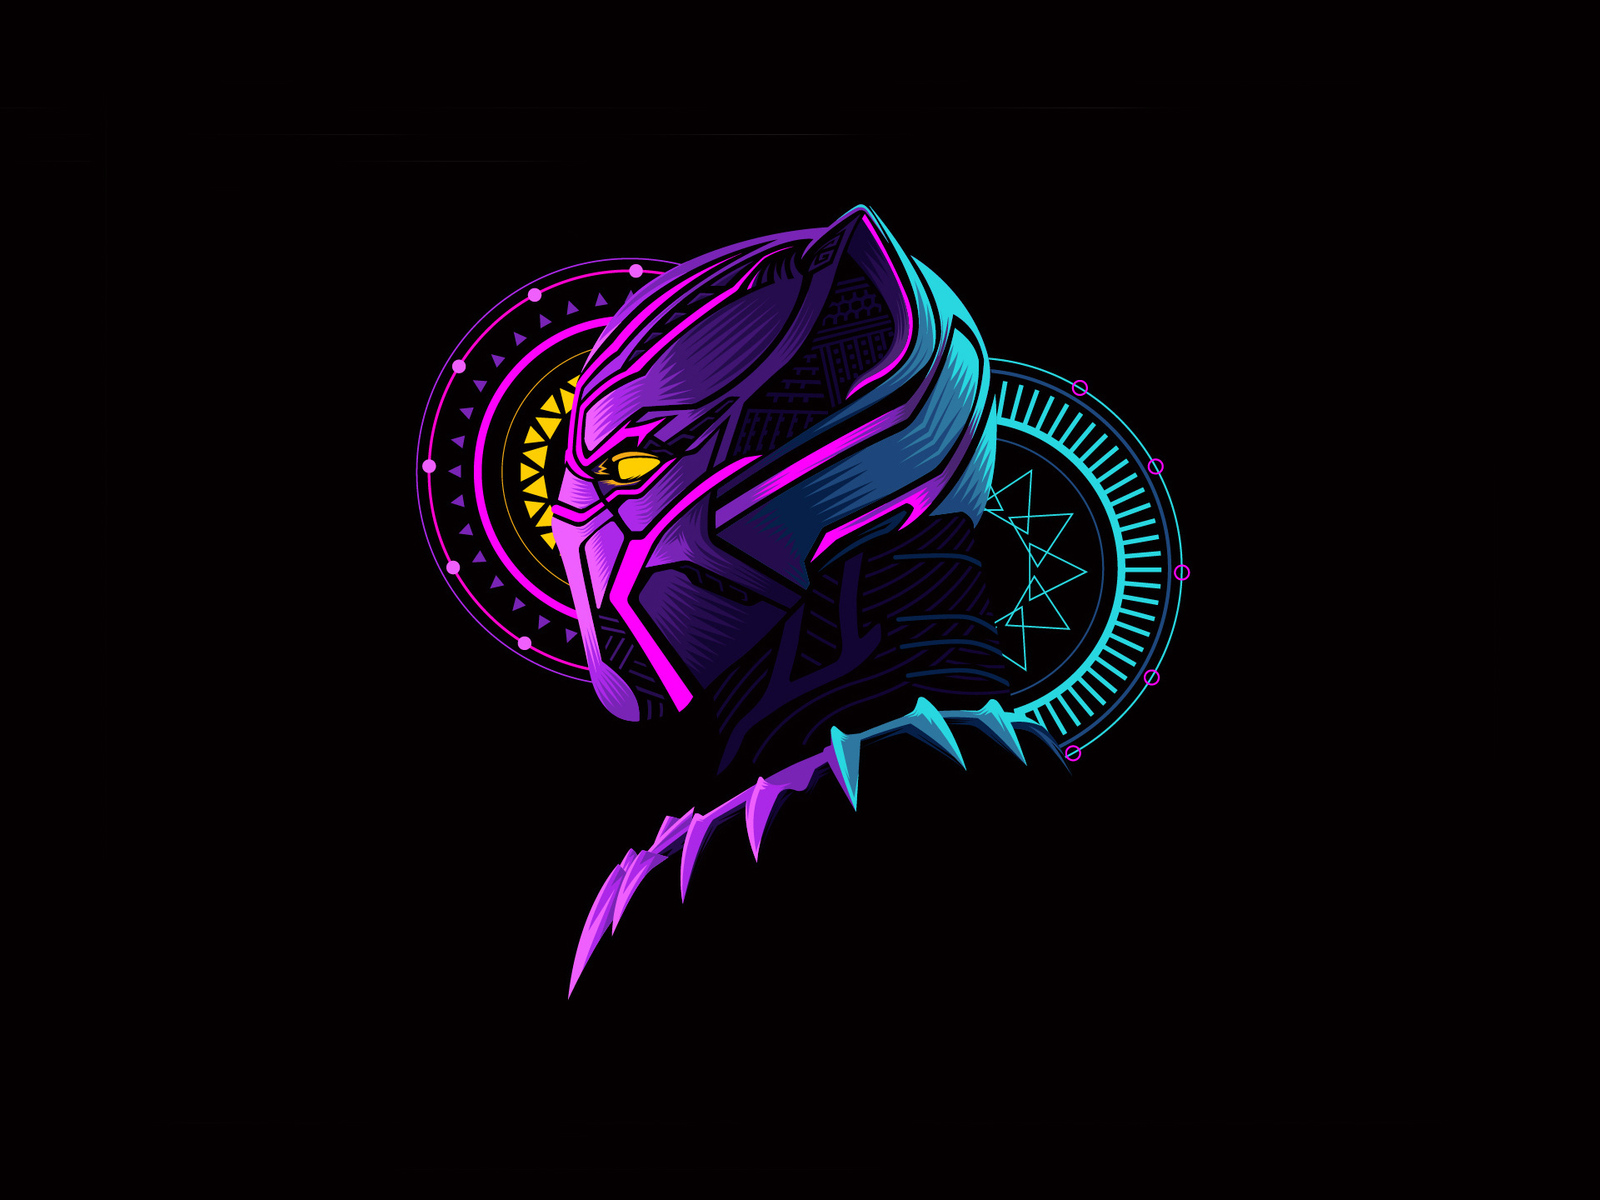 1600x1200 Black Panther Minimal Art 1600x1200 Resolution Hd 4k Wallpapers Images Backgrounds Photos And Pictures